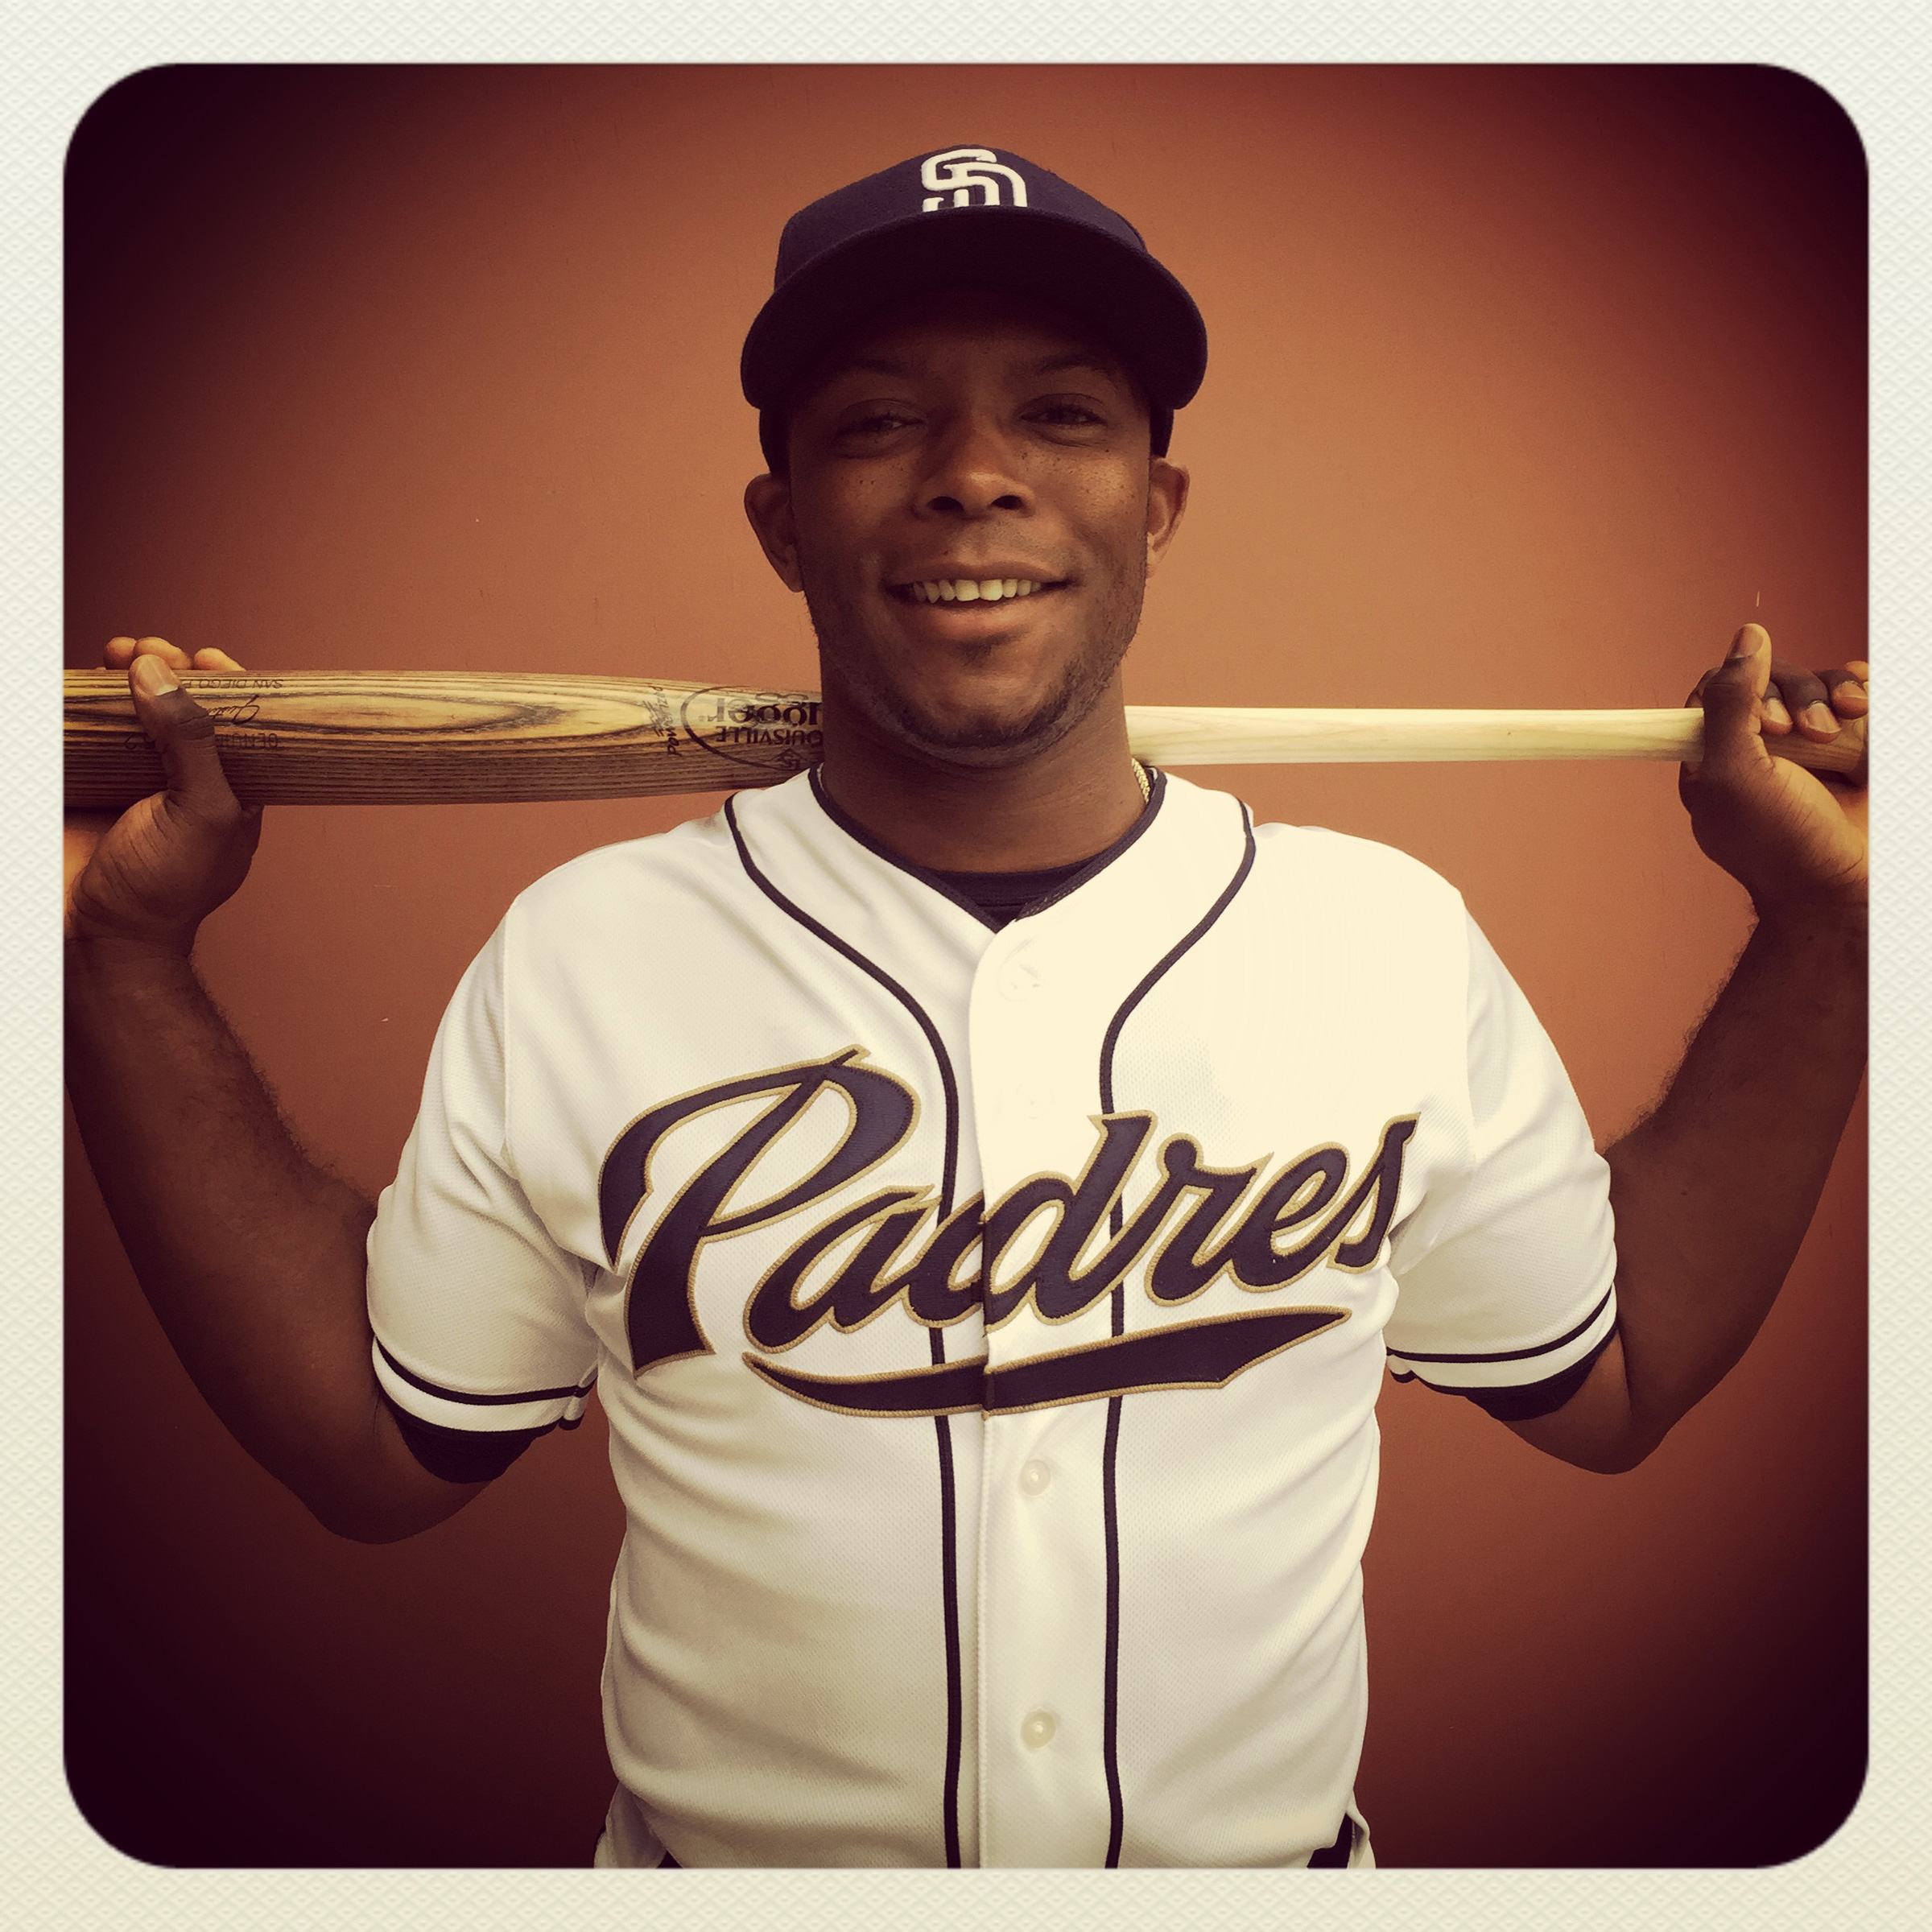 Justin Upton of the #Padres poses for a portrait on photo day this morning at #springtraining in Peoria, Arizona. #instantbaseball #iphone6plus